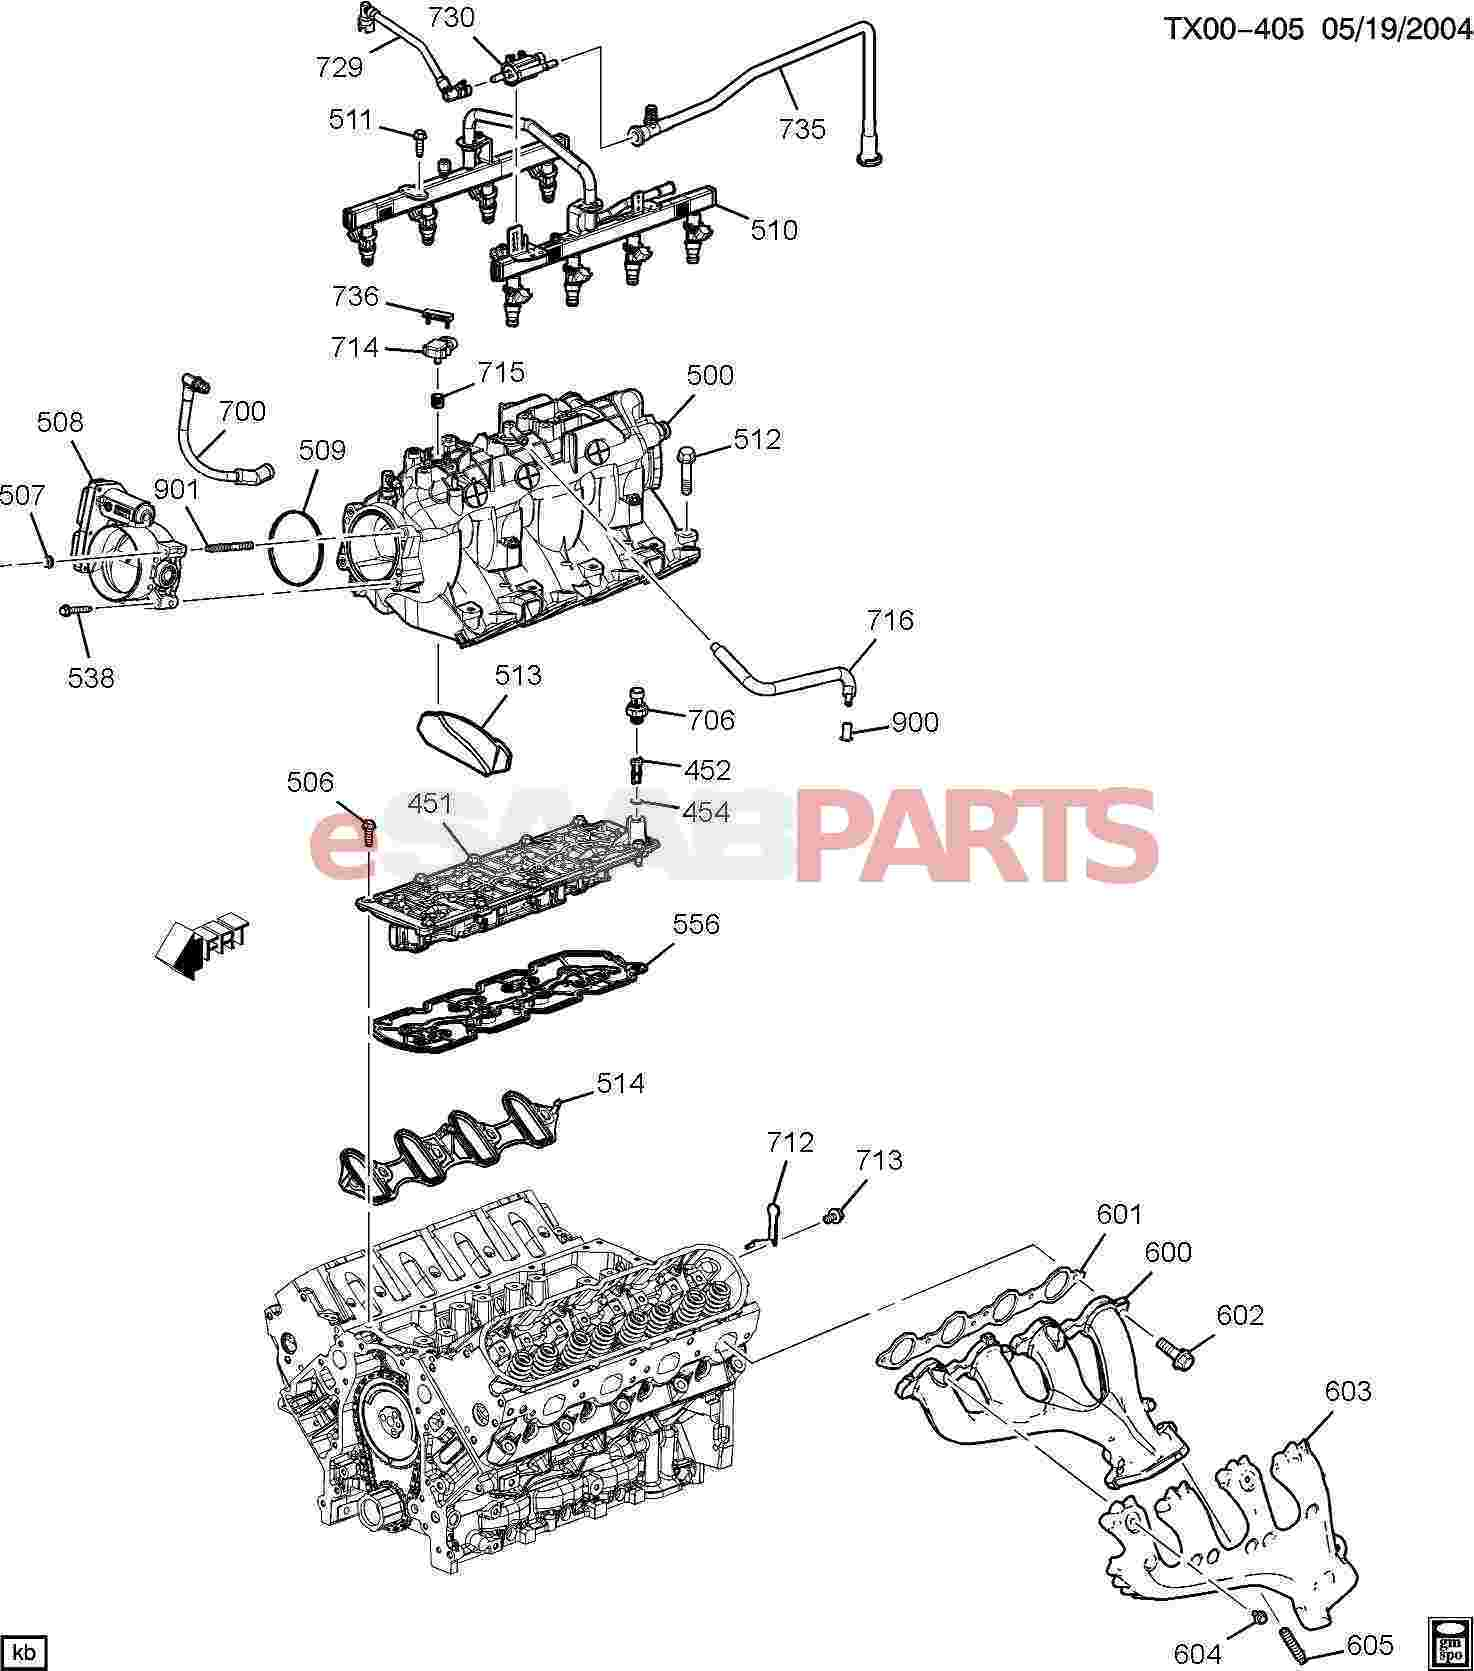 5 3 Liter Vortec Engine Diagram | Online Wiring Diagram  Vortec Engine Diagram on gm serpentine belt diagram, chevrolet 4.2 l6 engine diagram, colorado 3 5 vortex 3500 engine diagram, 3.8 liter gm engine diagram, car engine diagram, chevy 4.2l engine diagram, gm quad 4 valve diagram, 4.3 v6 engine diagram, w12 engine animation diagram, 4.2 firing order diagram, 4300 vortec sensor diagram, ford 3.8 v6 engine diagram, gmc envoy engine diagram, 1997 318i engine diagram,